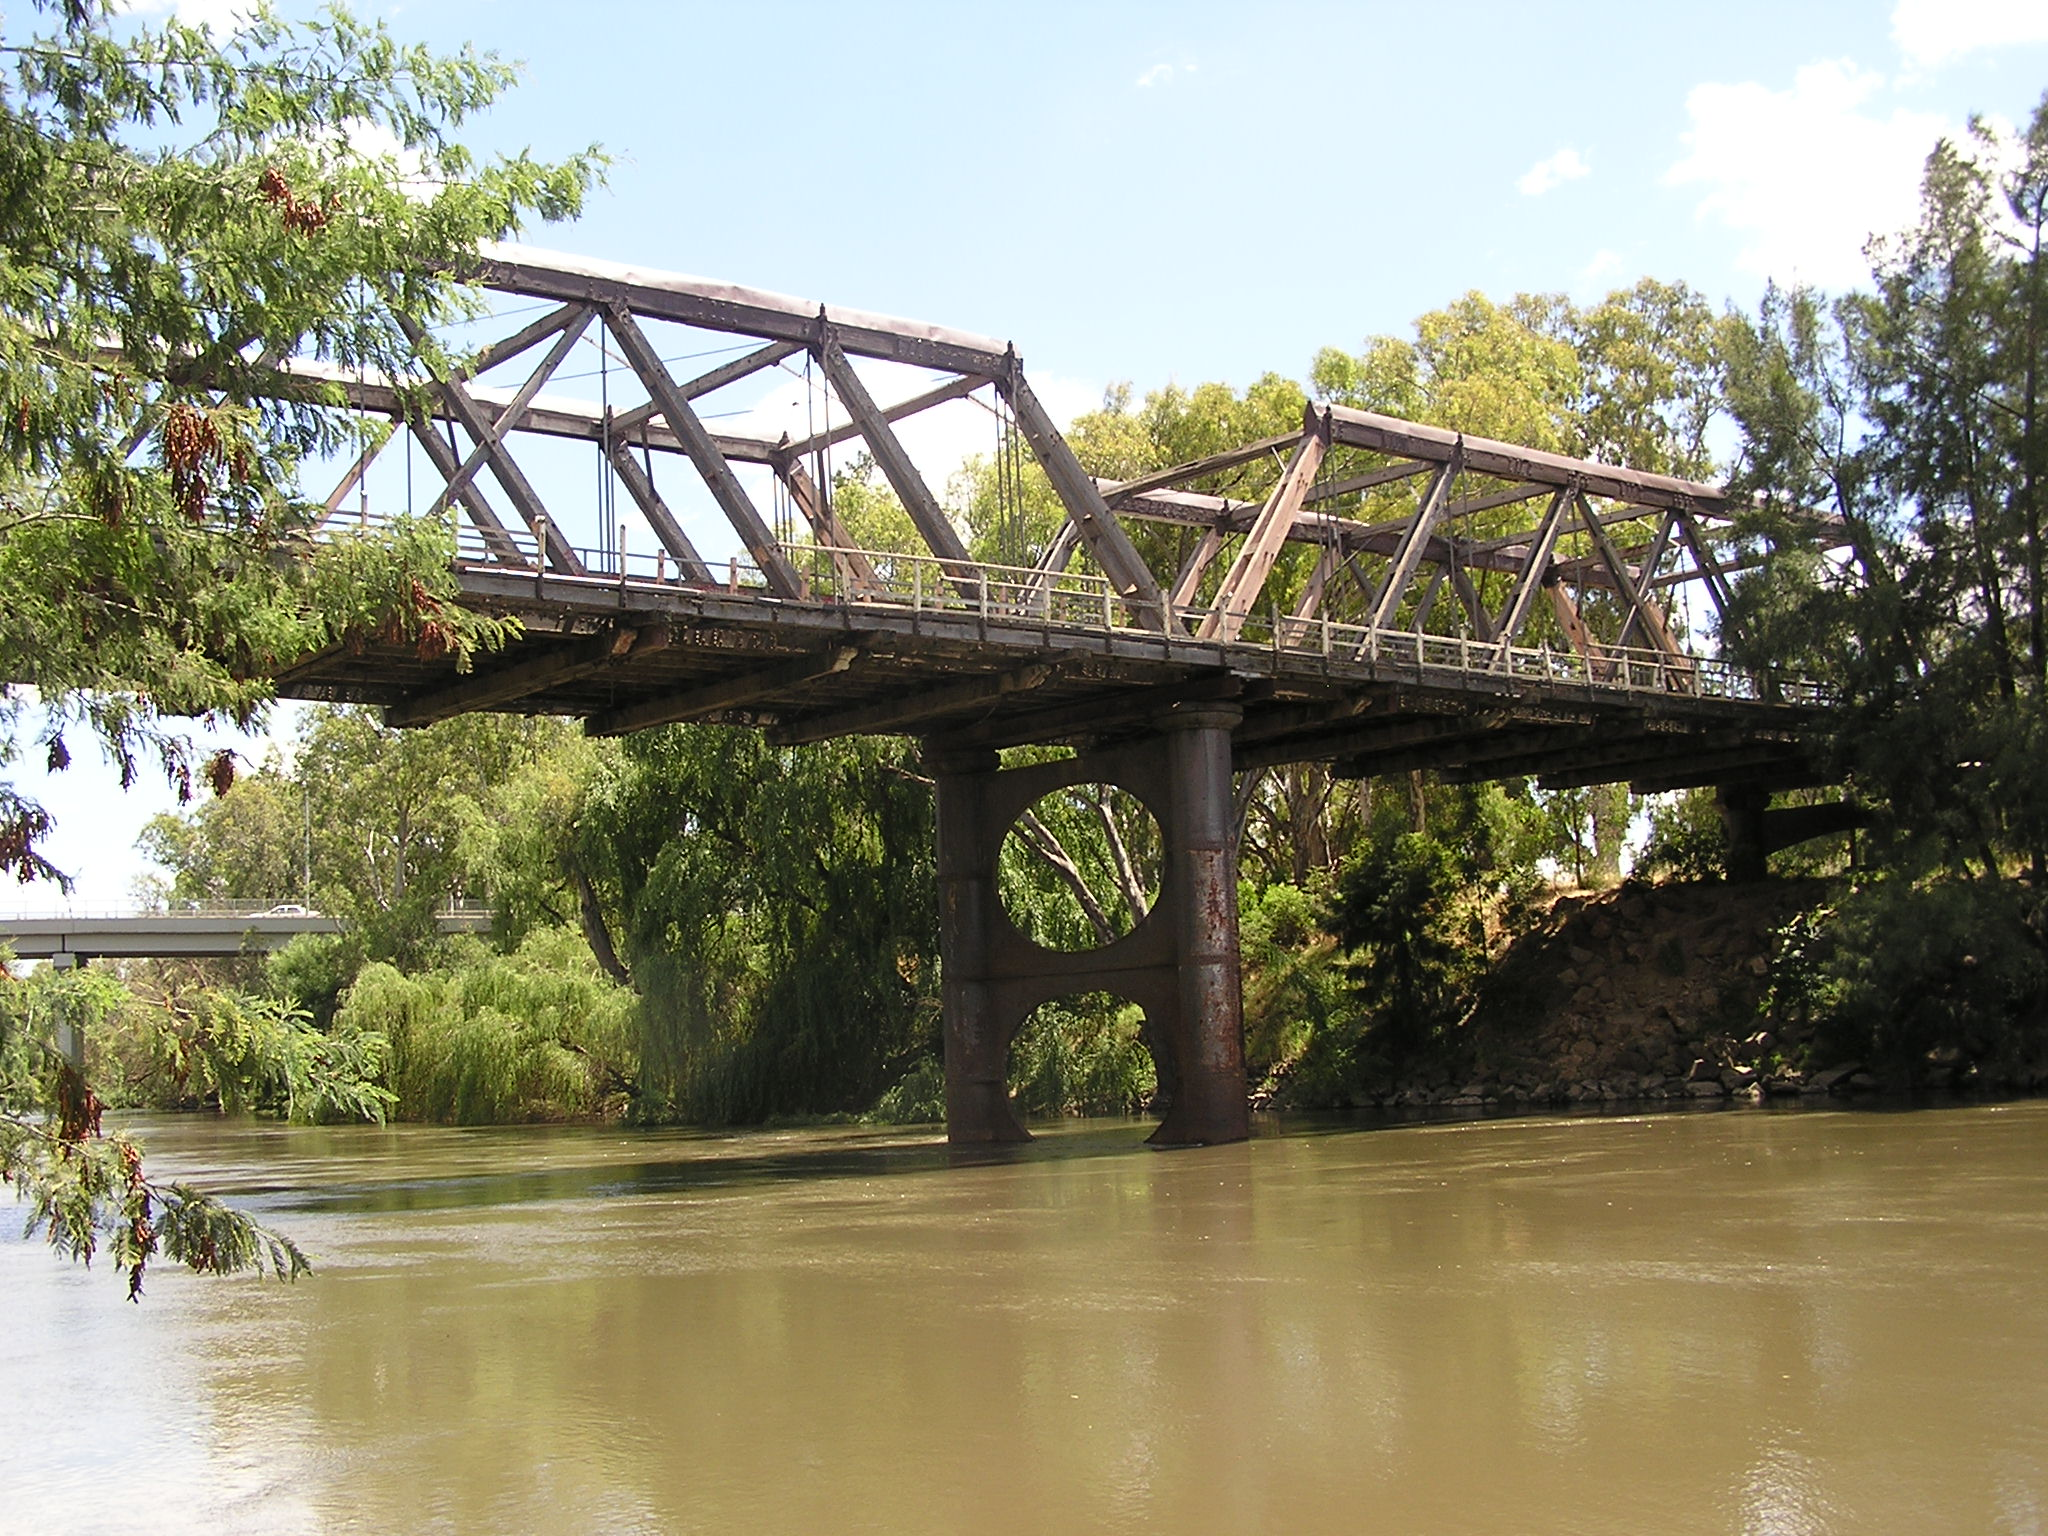 The old Wagga bridge